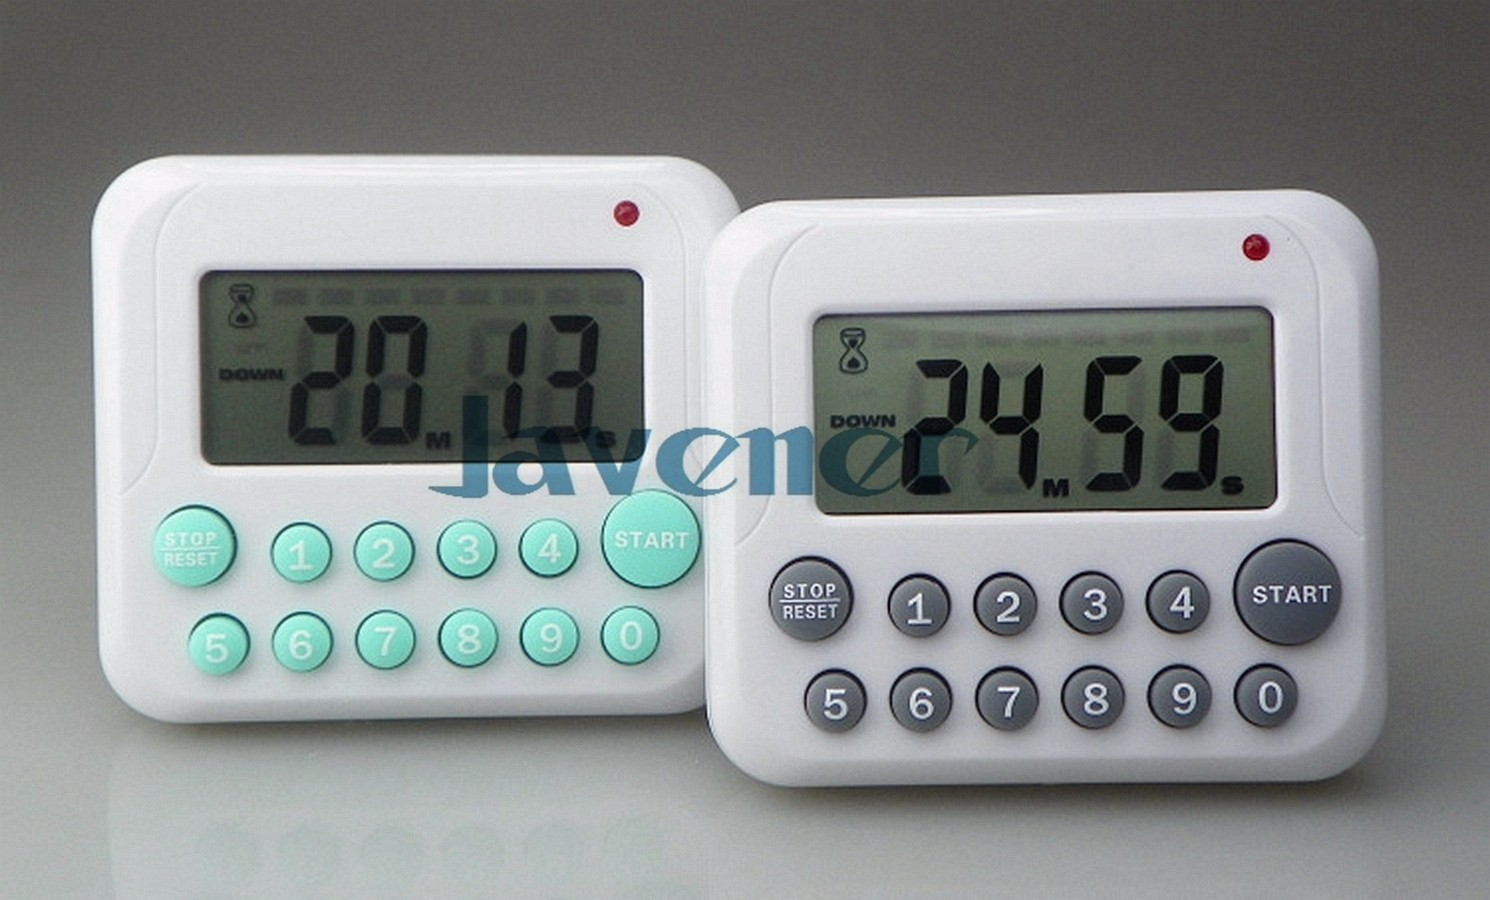 A Timer for 1 Minutes Lovely Portable Digital Lcd Timer Countdown Alarm Clock Lab